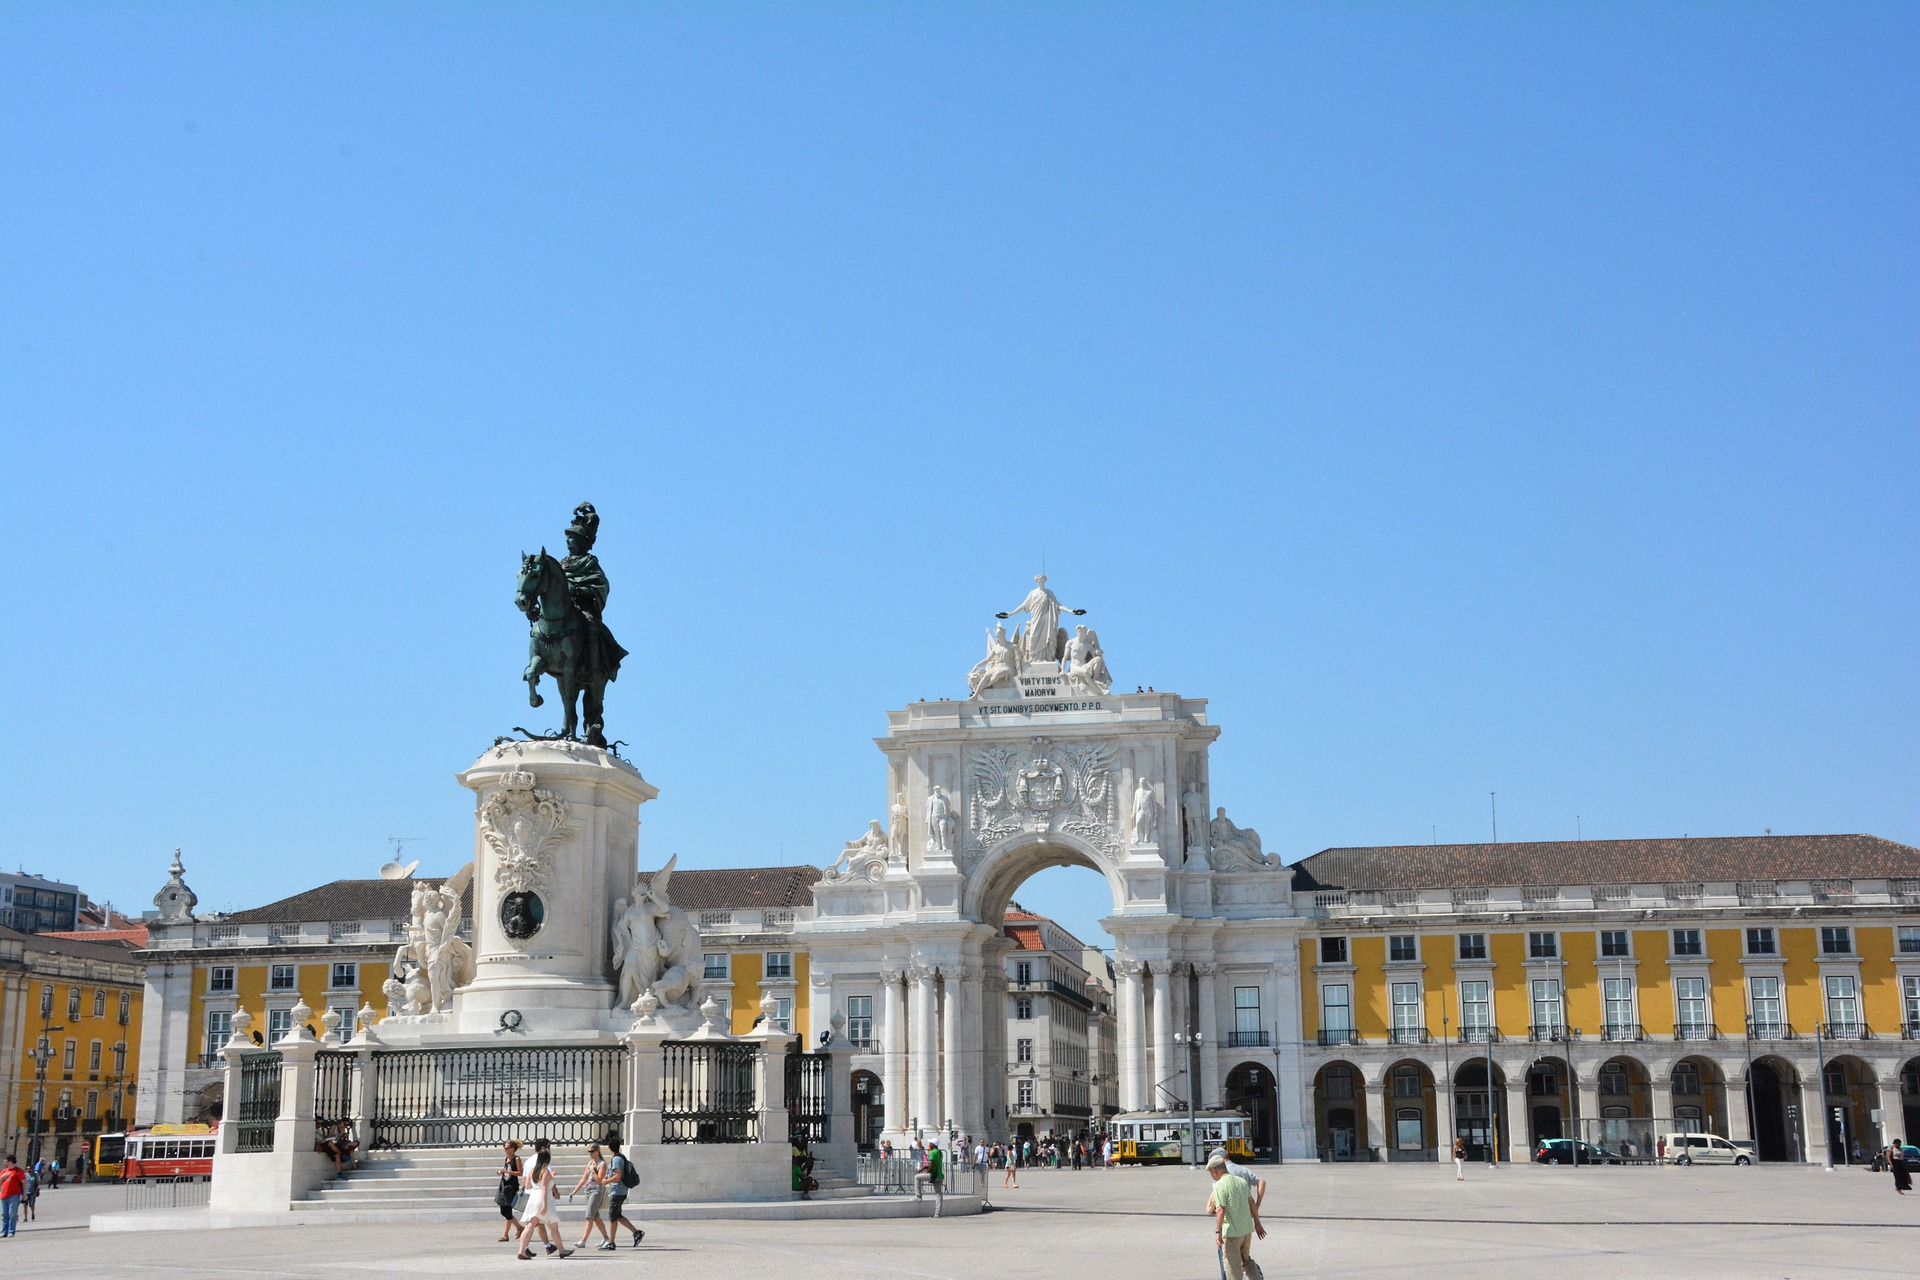 Grand Spain & Portugal - Praça do Comércio, Lisbon, Portugal